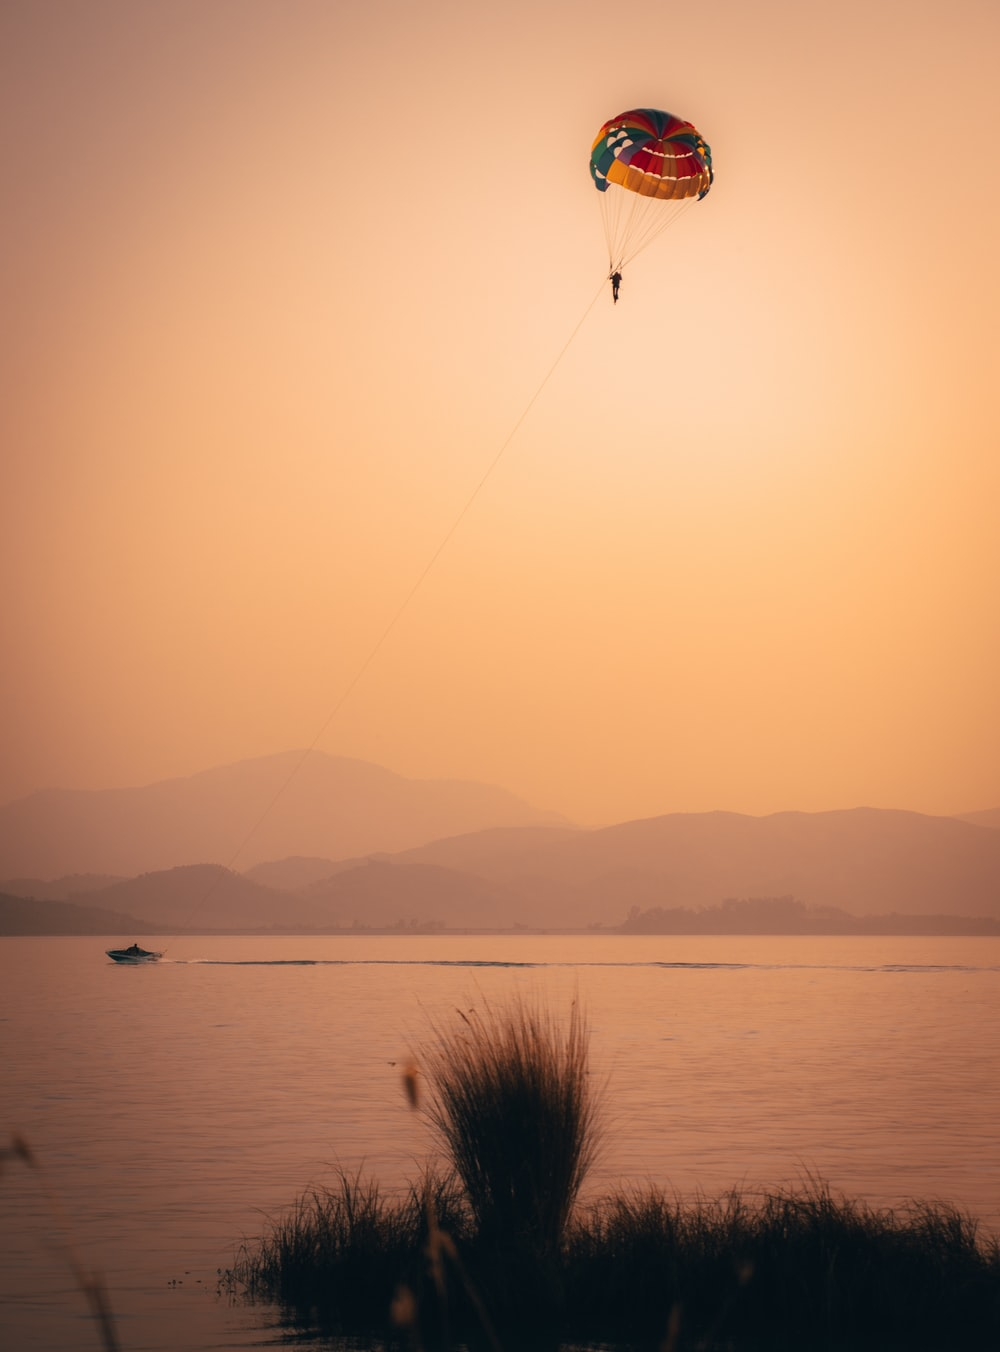 person on parachute over the sea during daytime